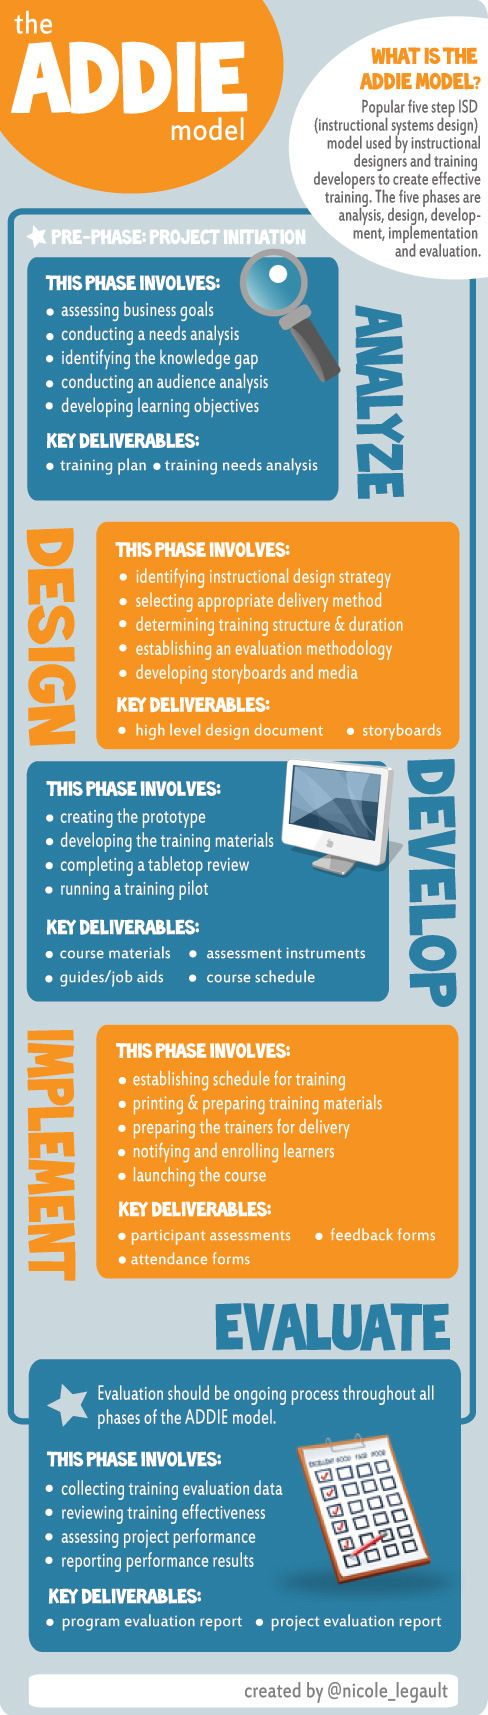 The ADDIE Instructional Design Model Infographic - e-Learning Infographics